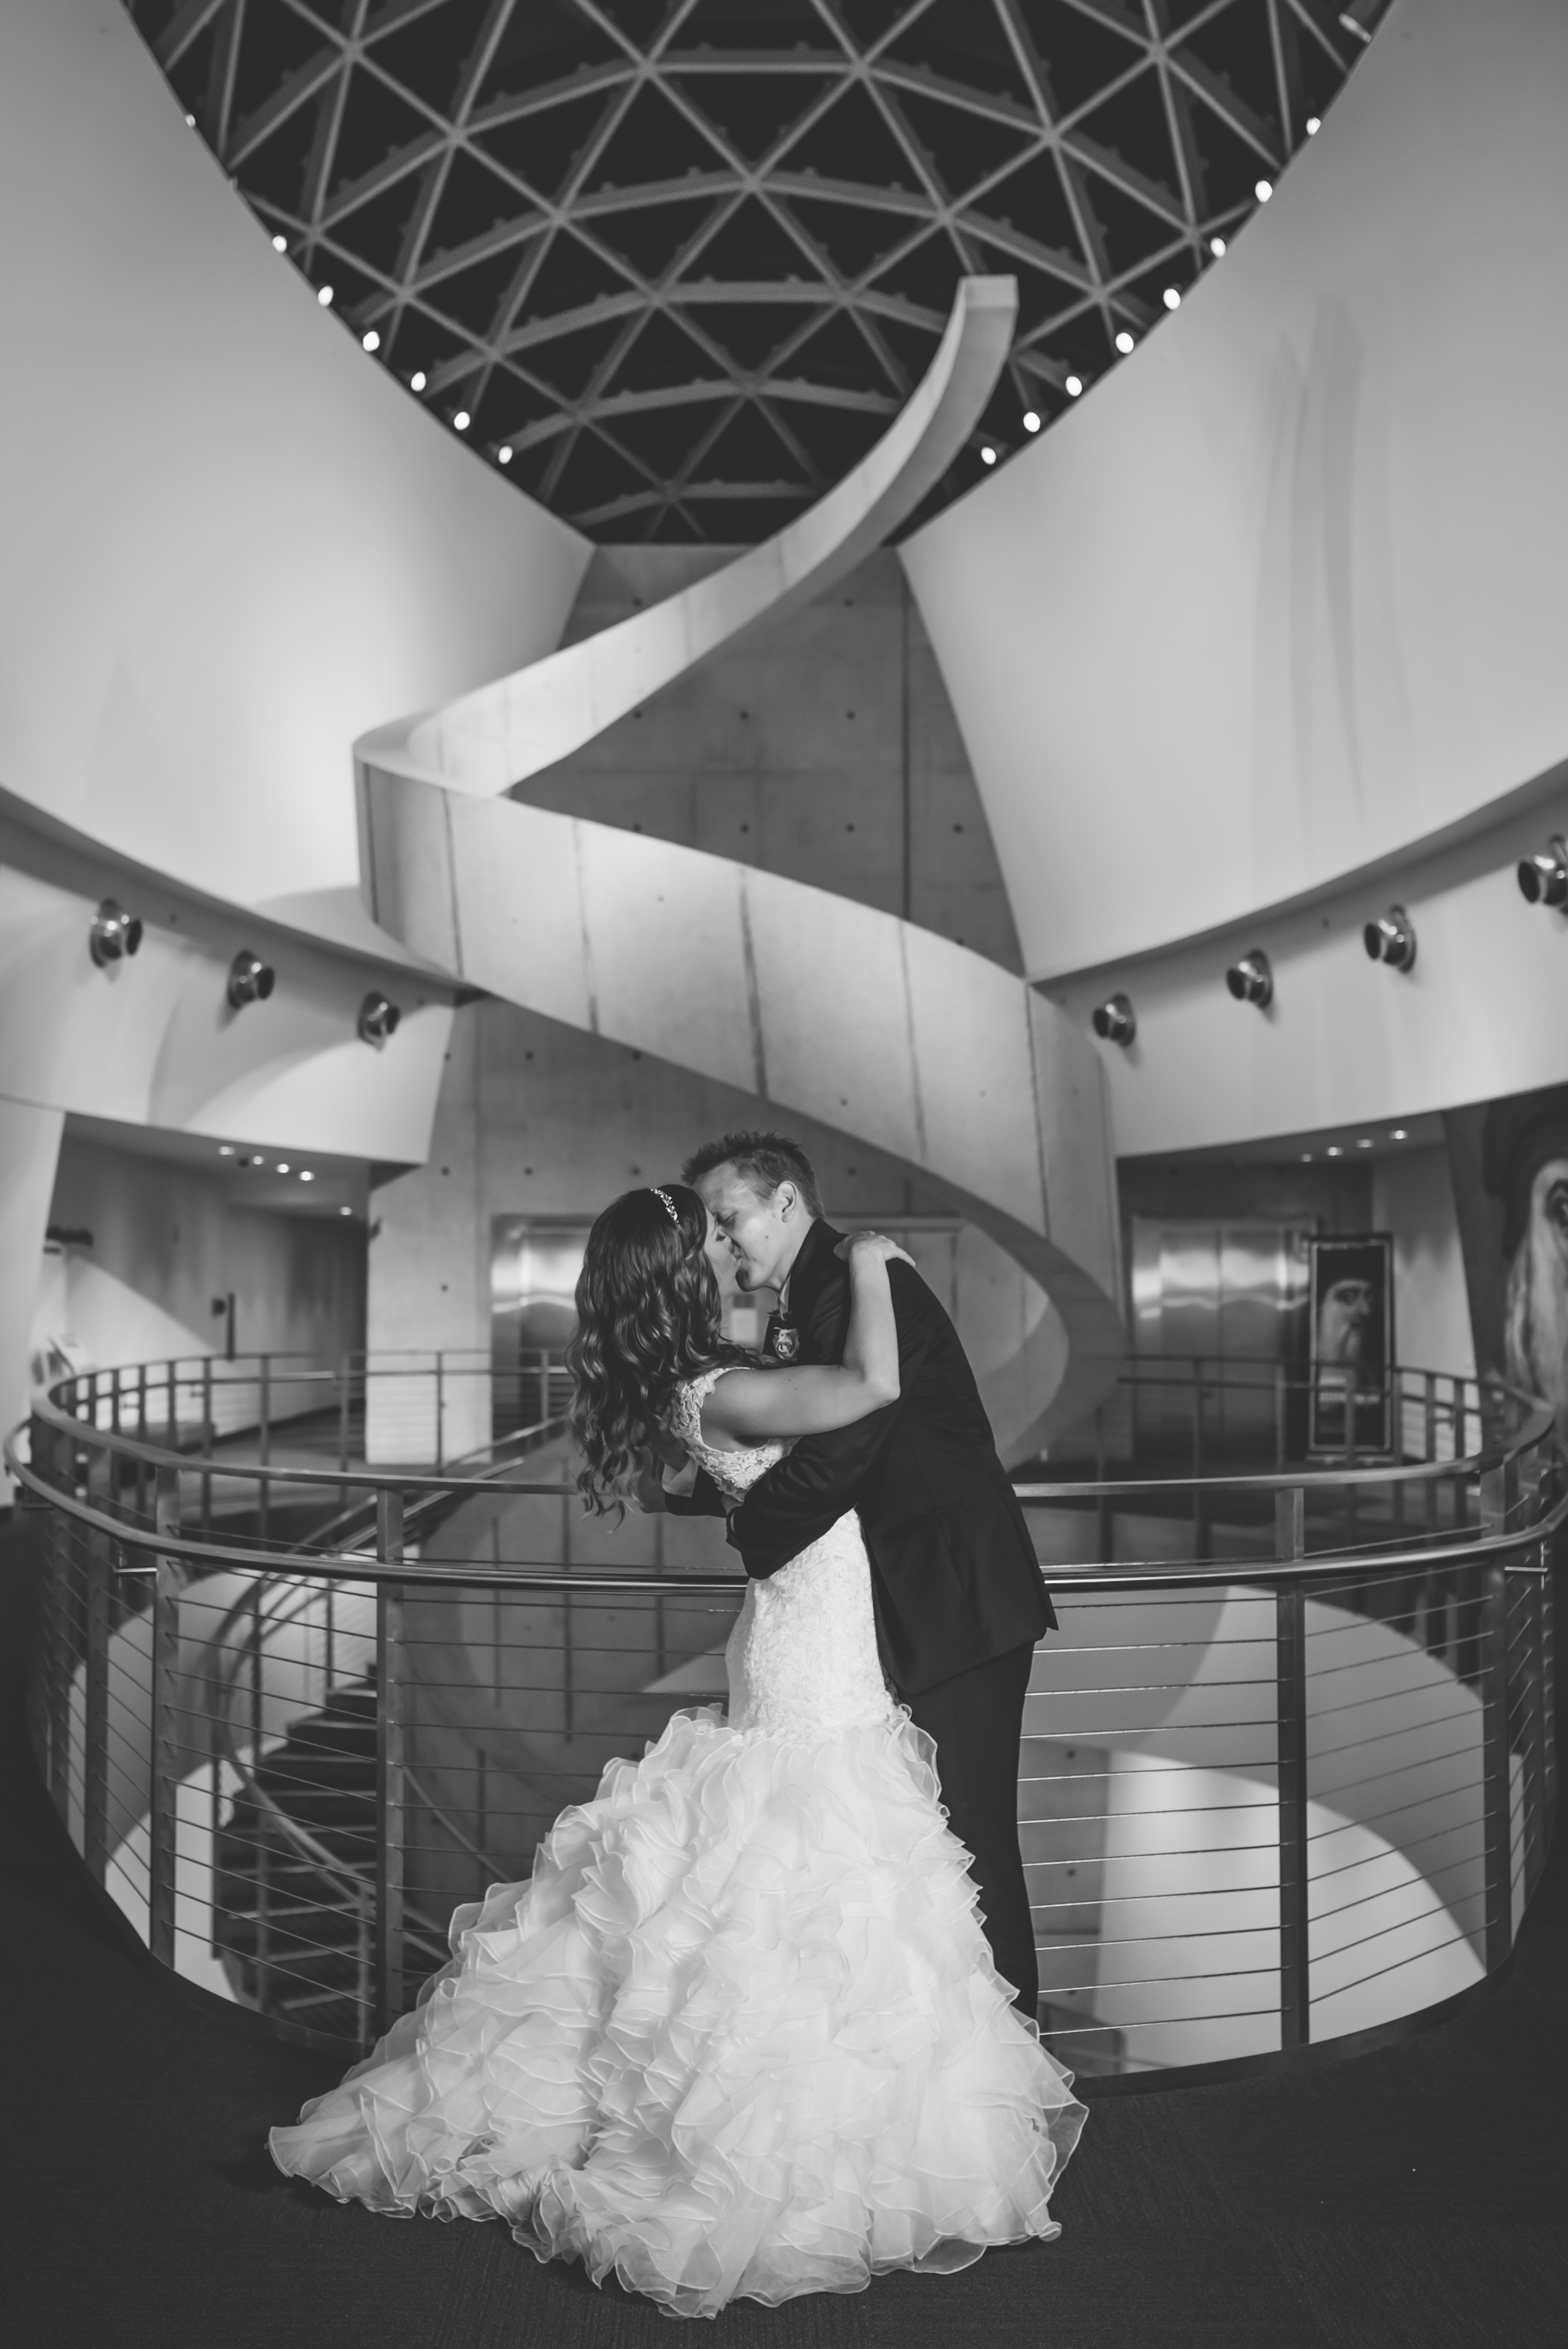 YESS! Brad and Jill are awesome! Their intimate wedding at the Dali was so much fun! And since then Brad and I have become great friends and business partners. Together we have launched  Capture the Yes!  Proposal Photography!